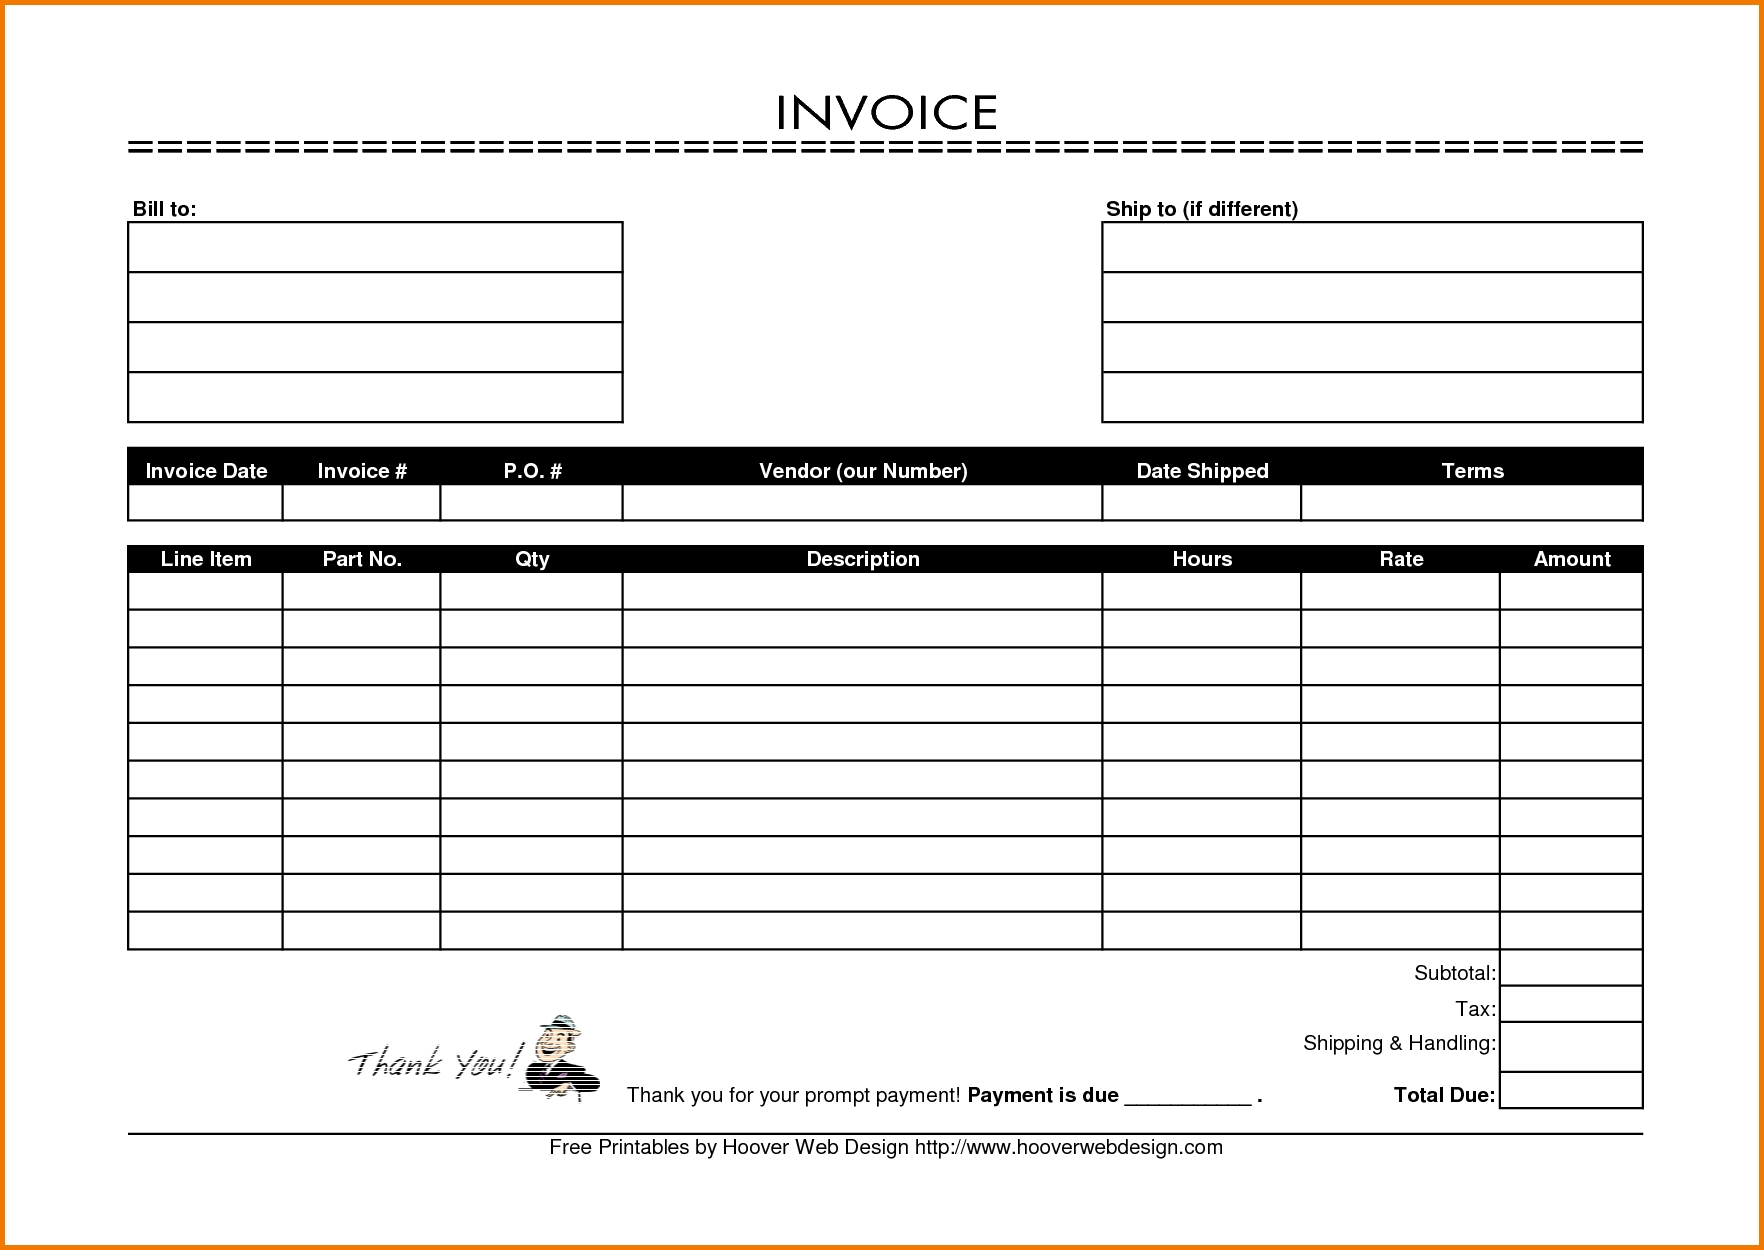 free printable blank invoice forms 4 printable blank invoice template expense report 1764 X 1250